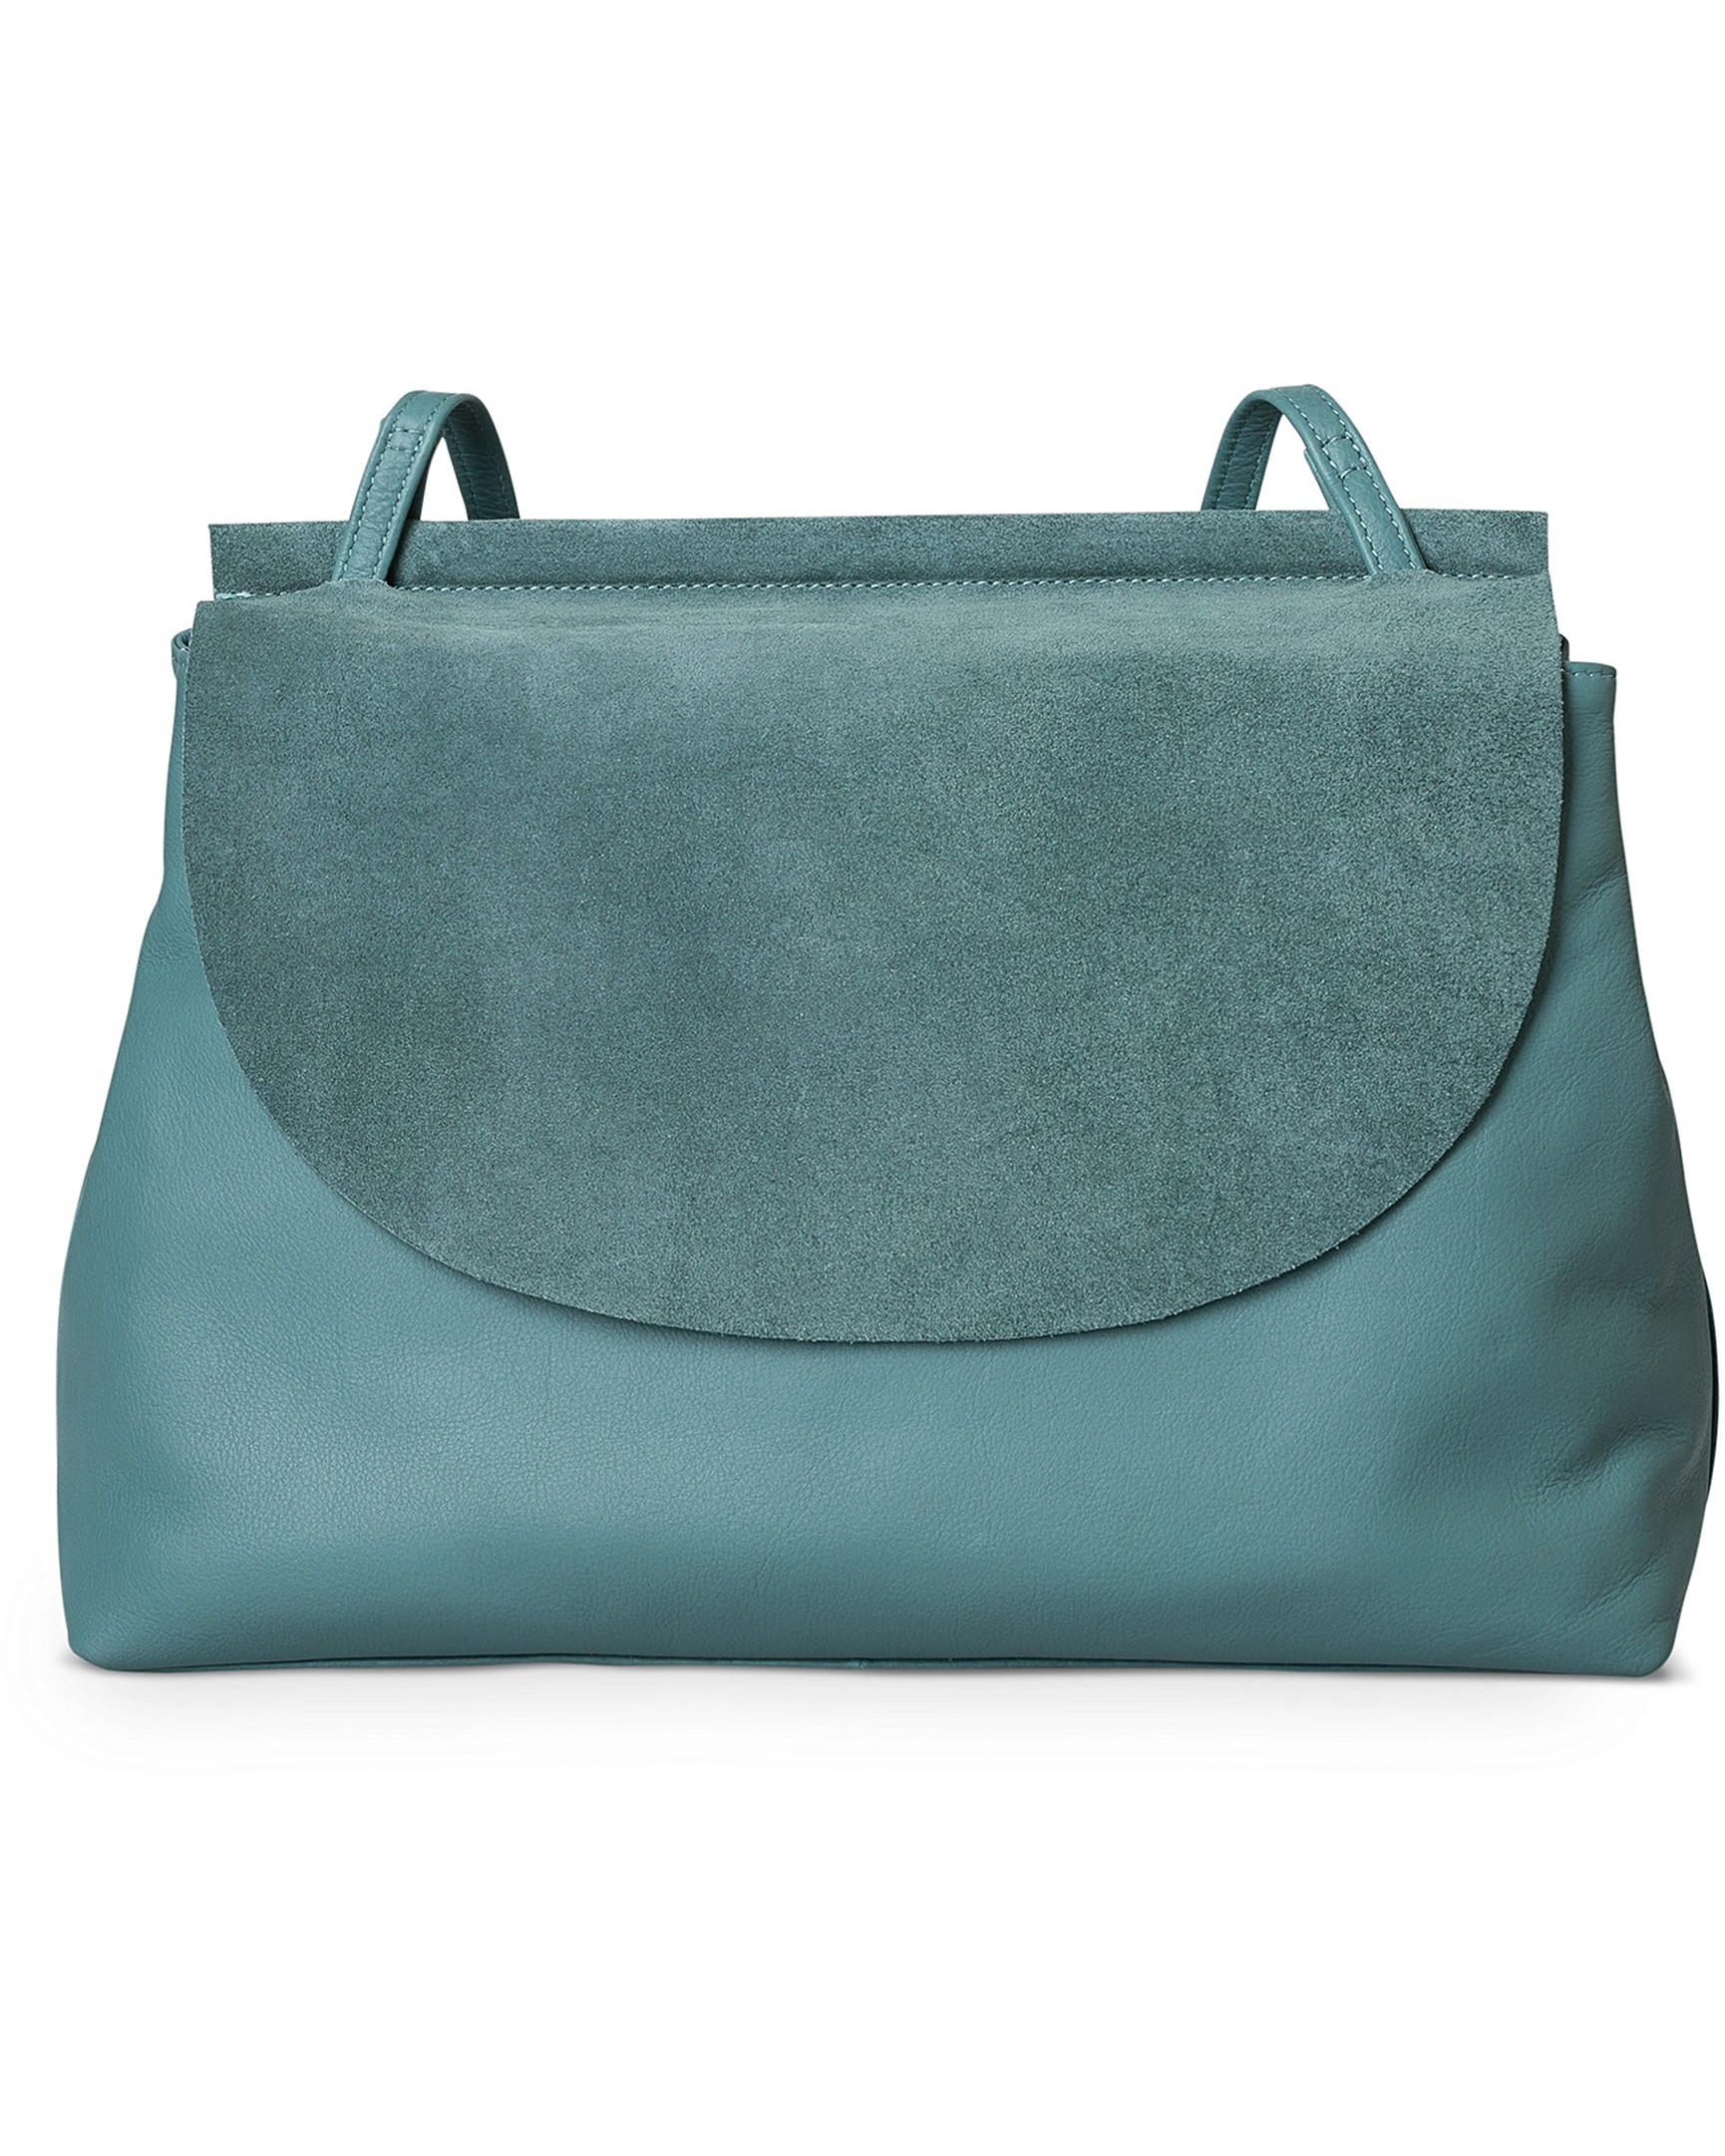 Clayton Suede Leather Shoulder Bag